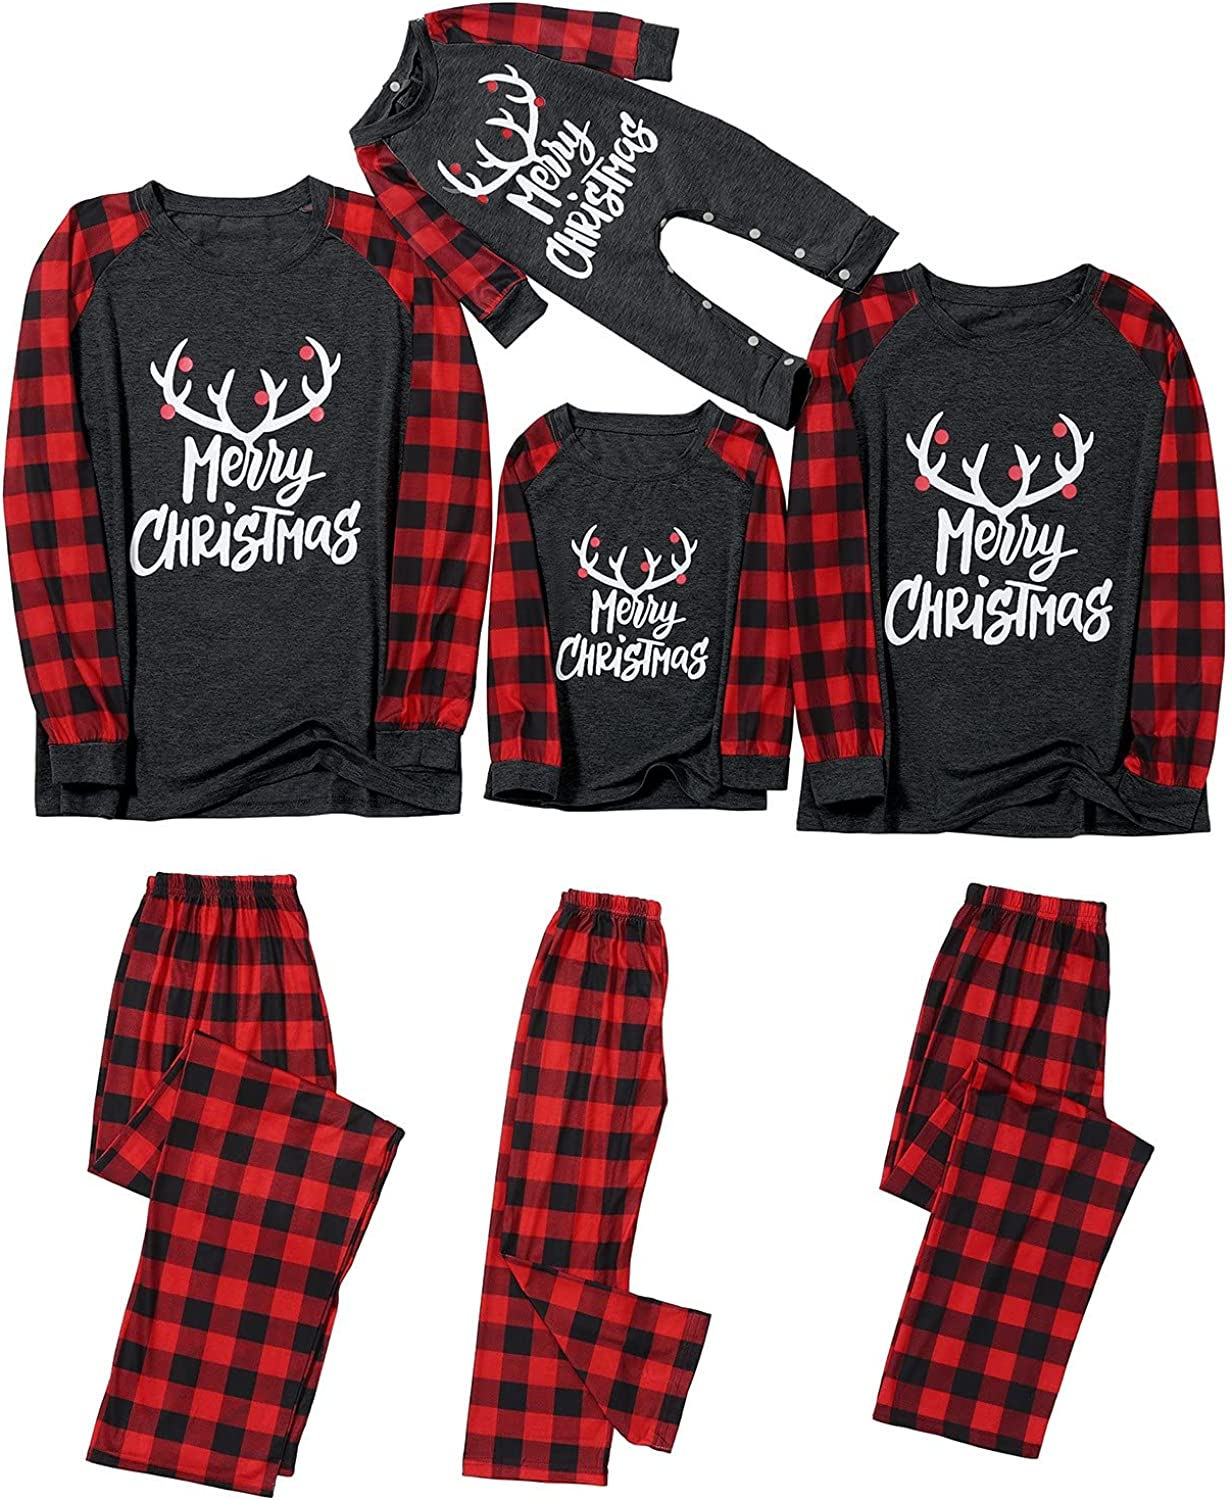 Family Christmas Pjs Matching Sets Merry Christmas Print Loungewear Outfit Casual Holiday Sleepwear